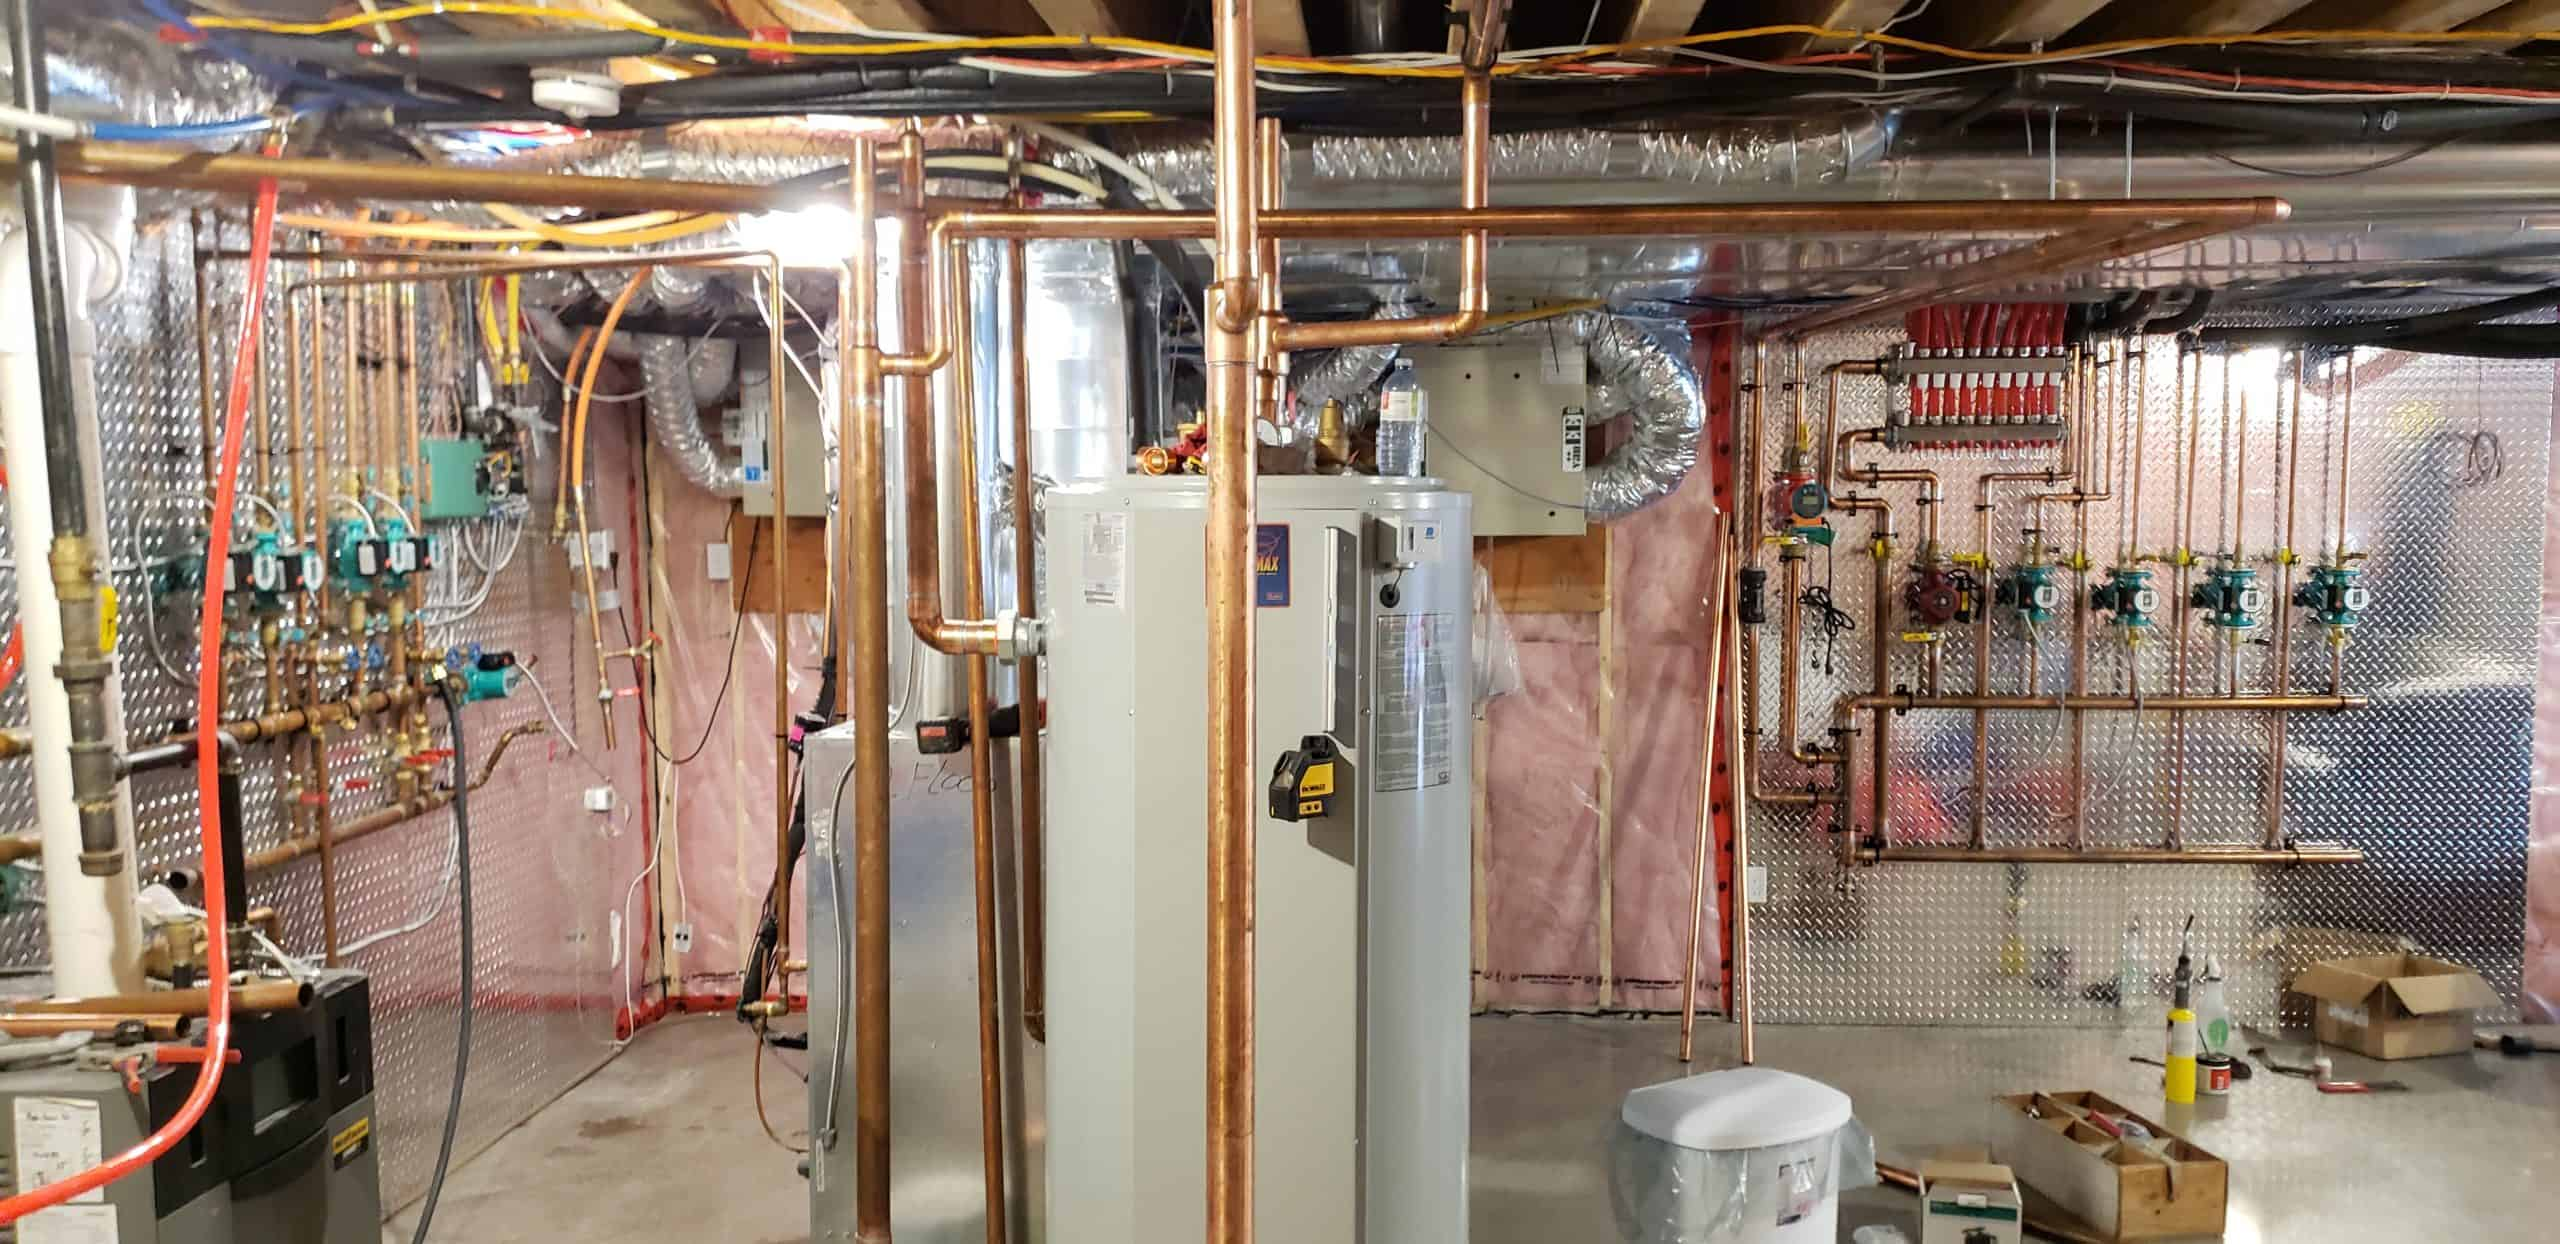 Indirect heater connections